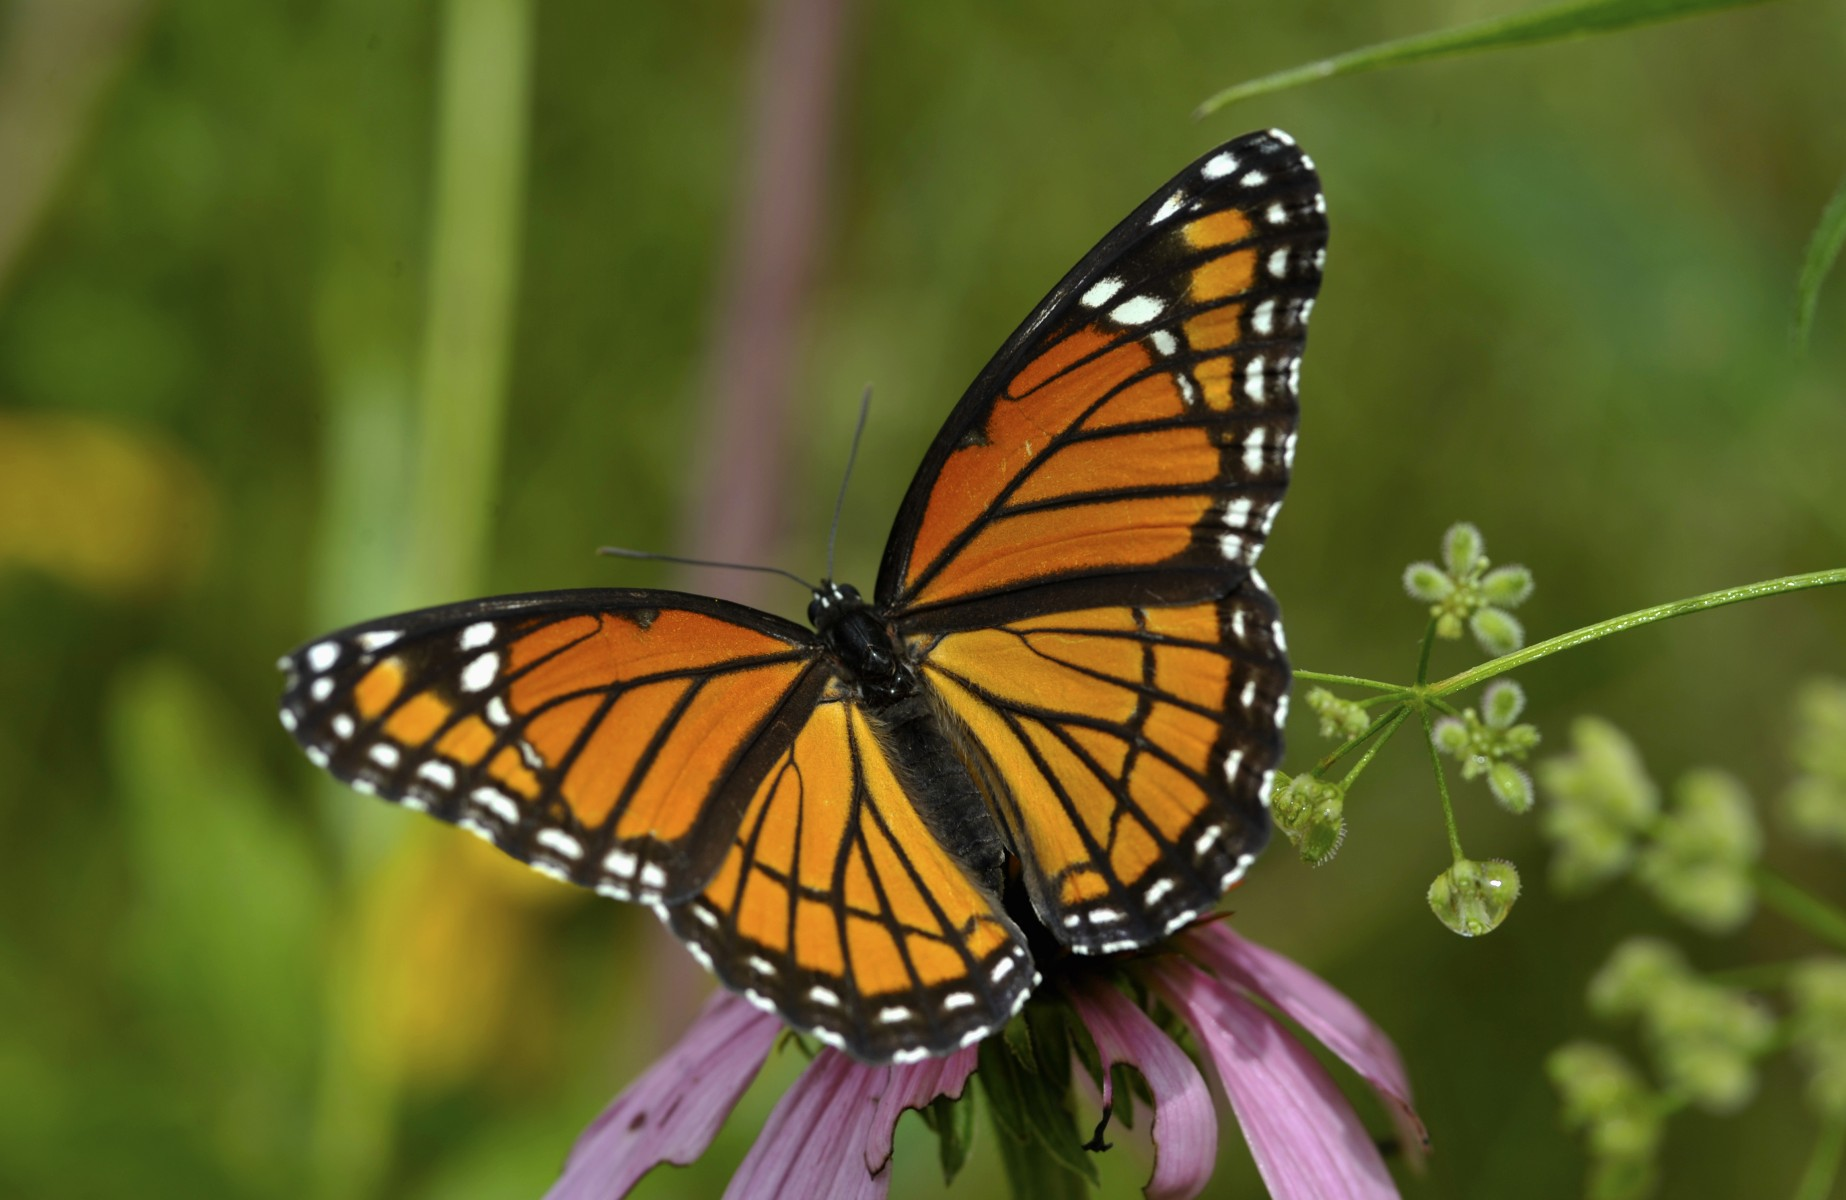 This butterfly is one of the many that has benefited from the enhanced habitats at the refinery.